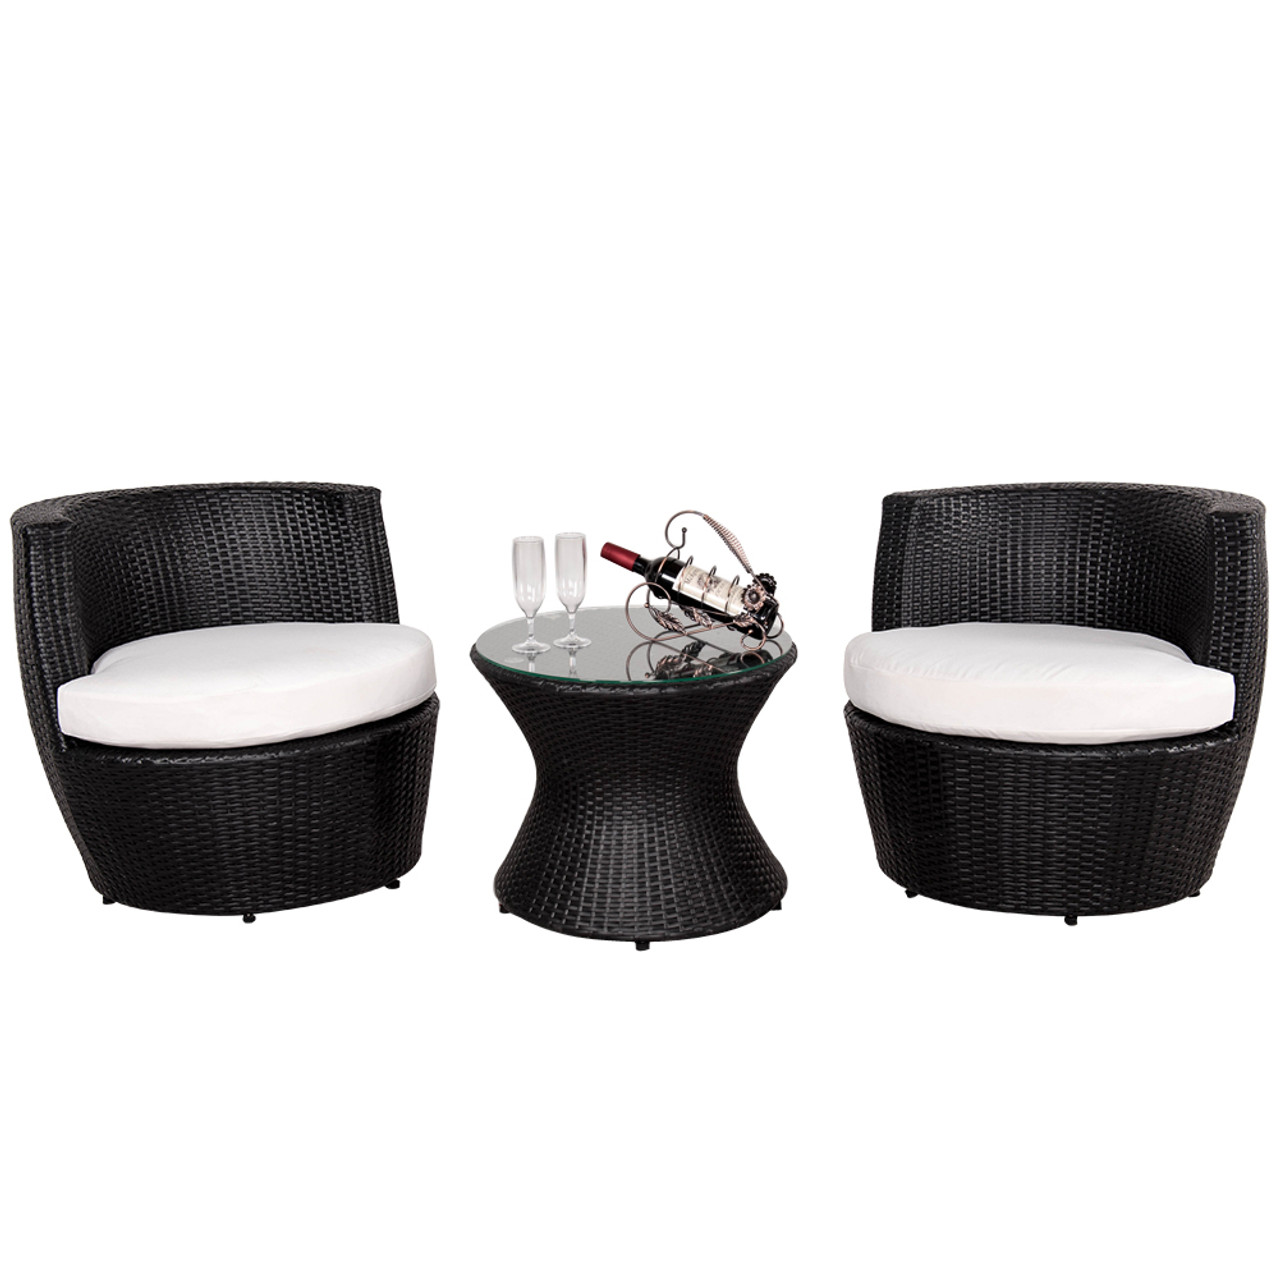 Deluxe 3 Pcs Stacking Patio Furniture Black Wicker Chat Set with Cushions - Deluxe 3 Pcs Stacking Patio Furniture Black Wicker Chat Set With